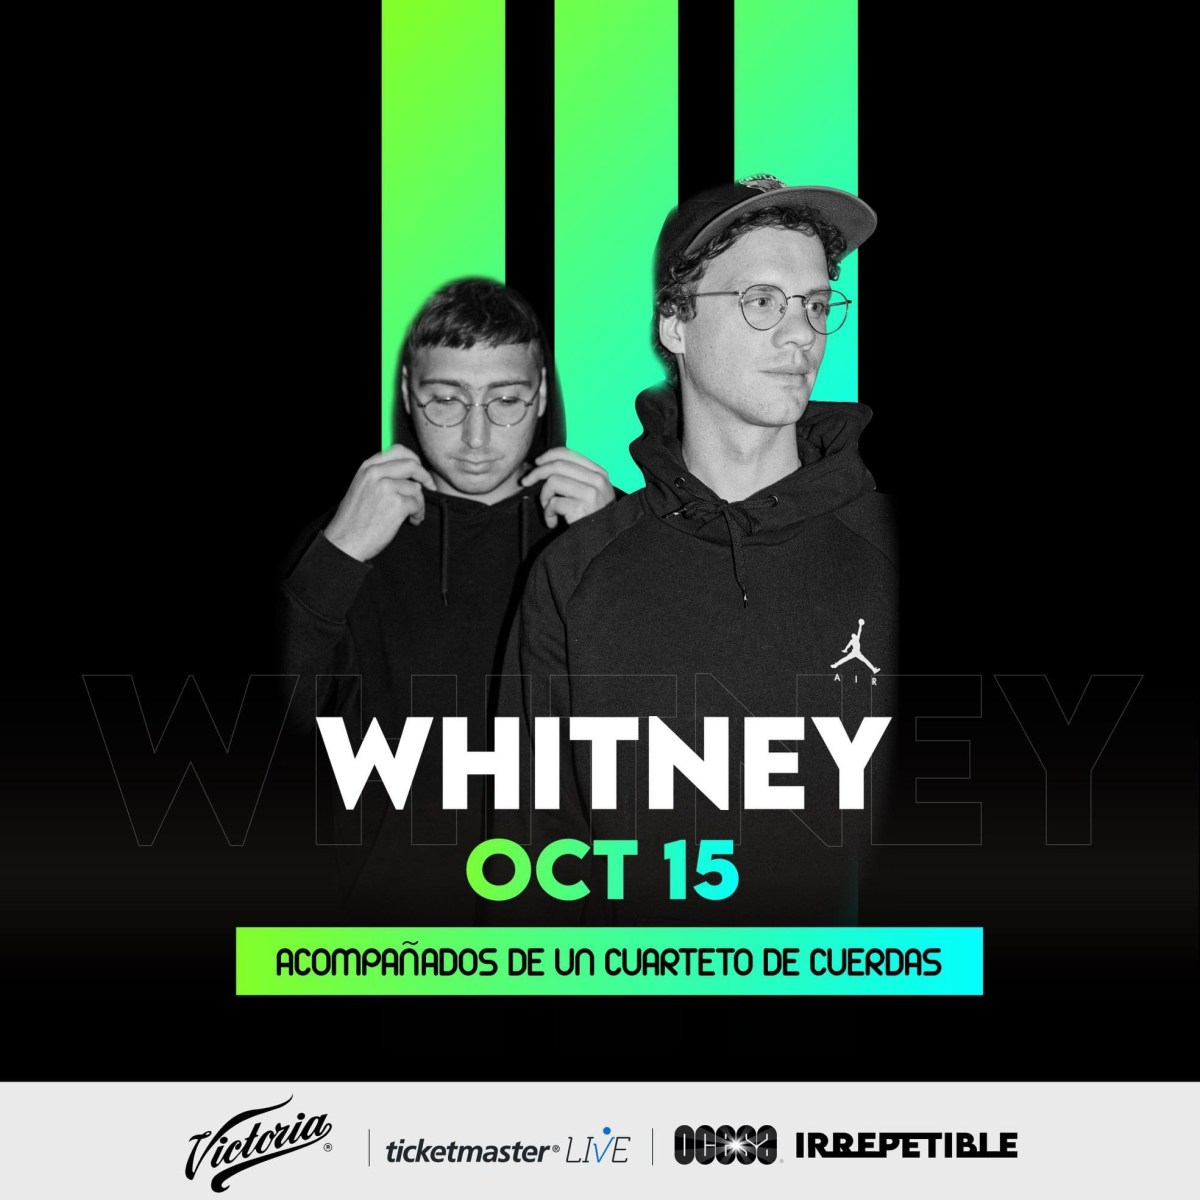 whitney-boletos-gratis-live-concierto-digital-2020